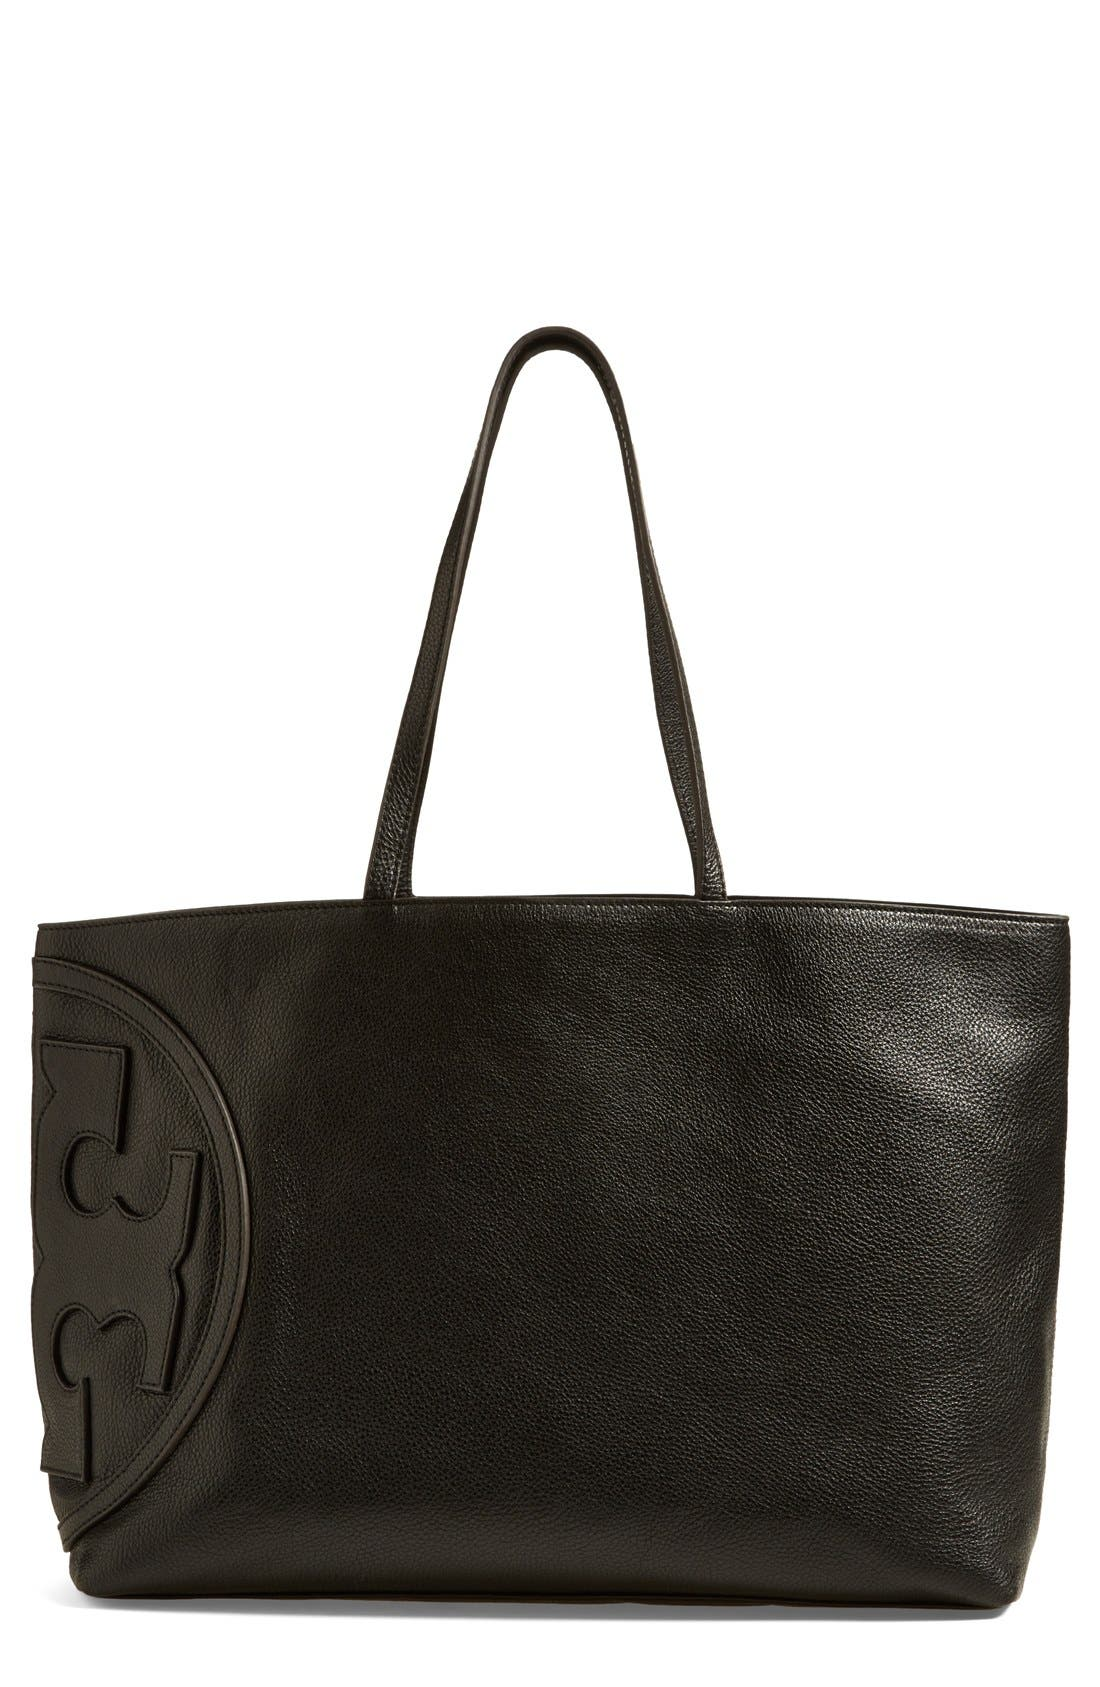 Alternate Image 1 Selected - Tory Burch 'All T' East/West Tote